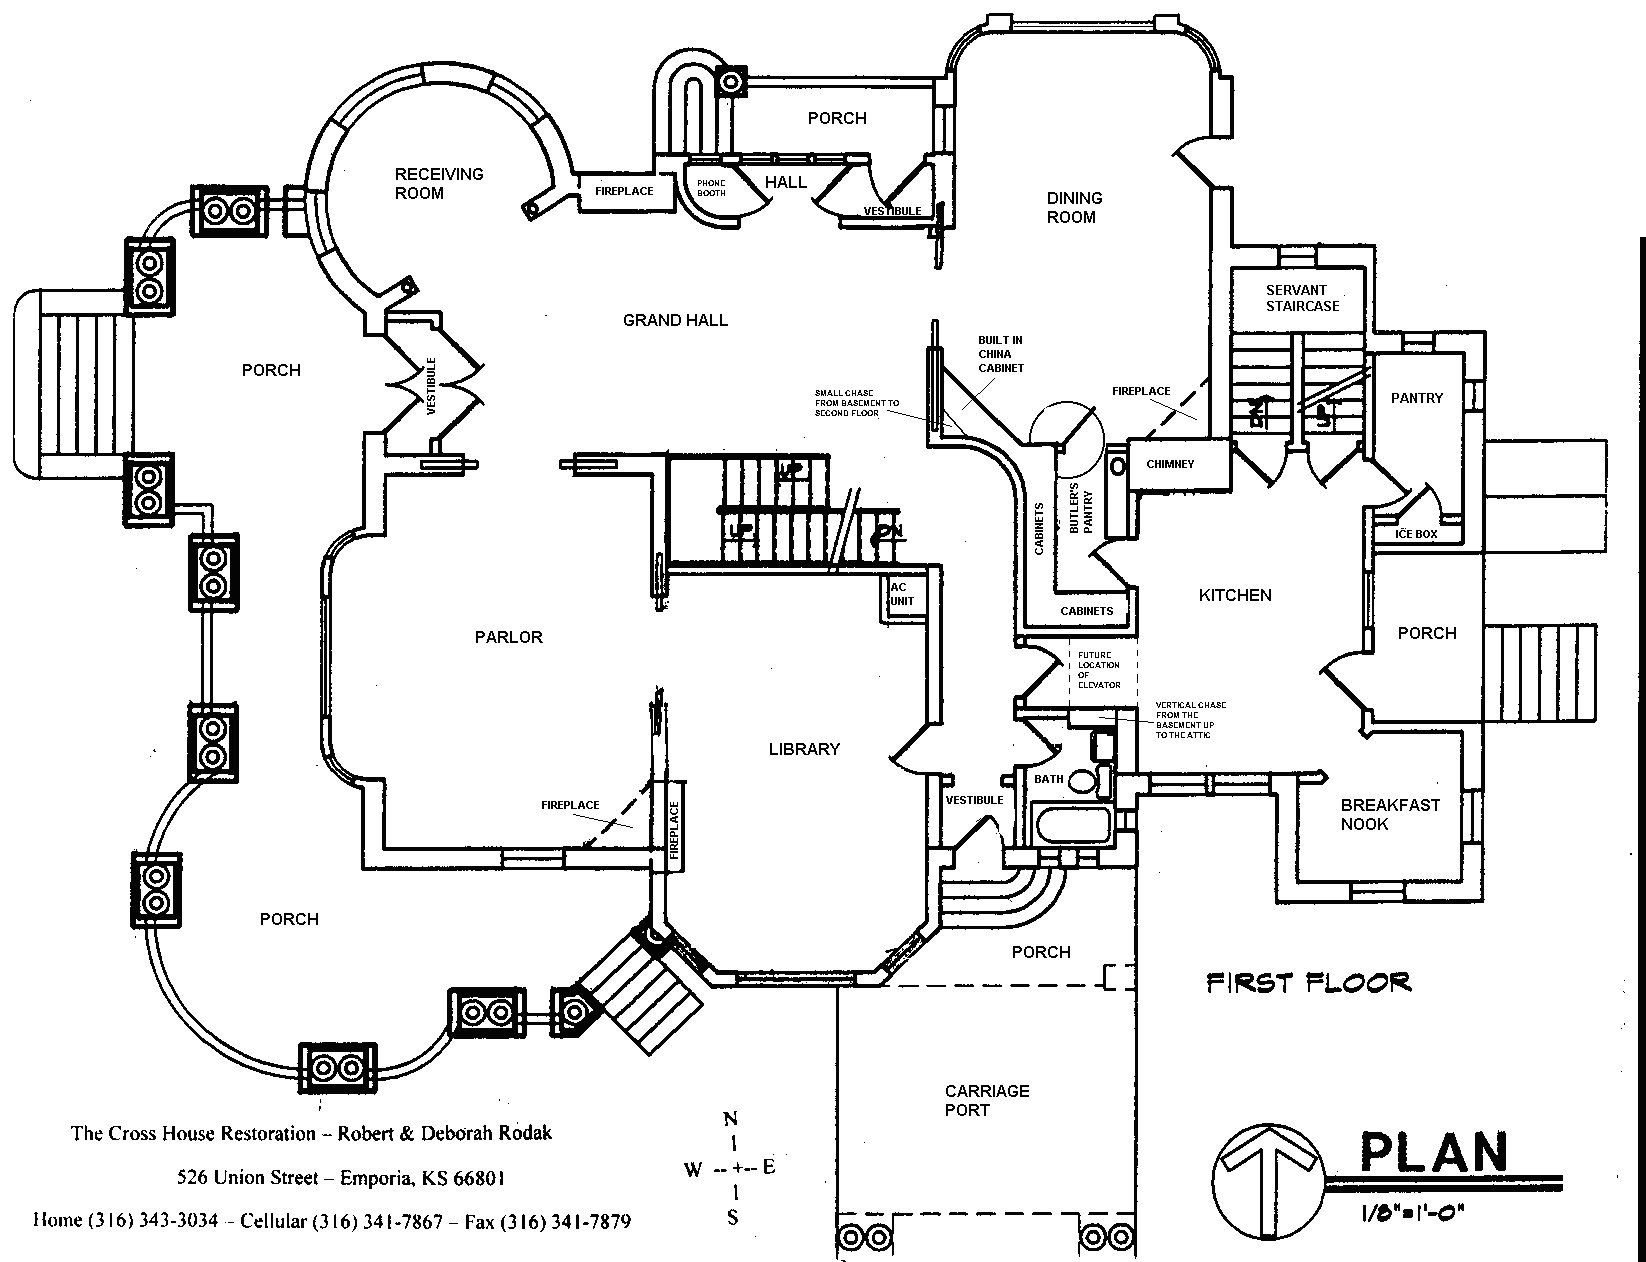 Cross house restoration floor plans and blueprints pinterest house blueprints house and Build your floor plan